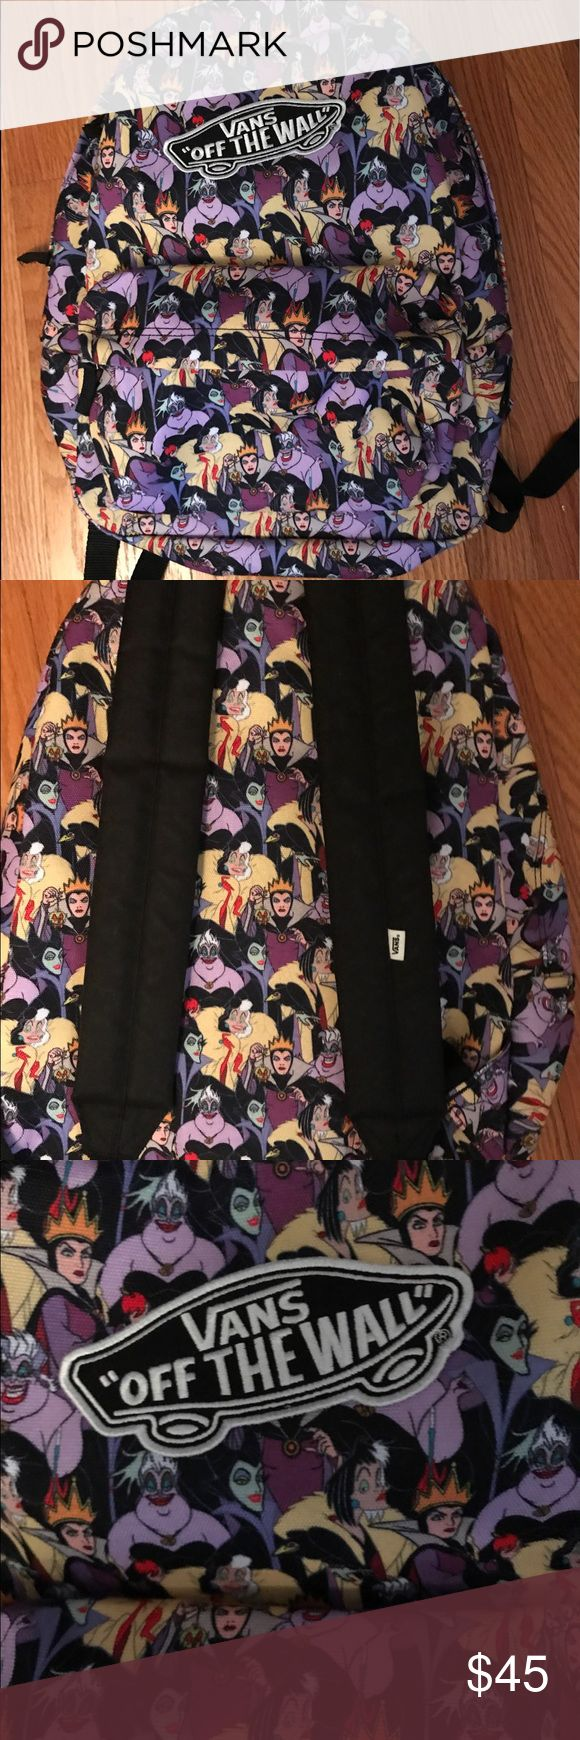 Vans Disney Villain Villainess Backpack This is a Vans Disney Villainess Backpack. It is very slightly used with no visible wear. Comes from a non smoking home. No longer sold in stores. Vans Bags Backpacks